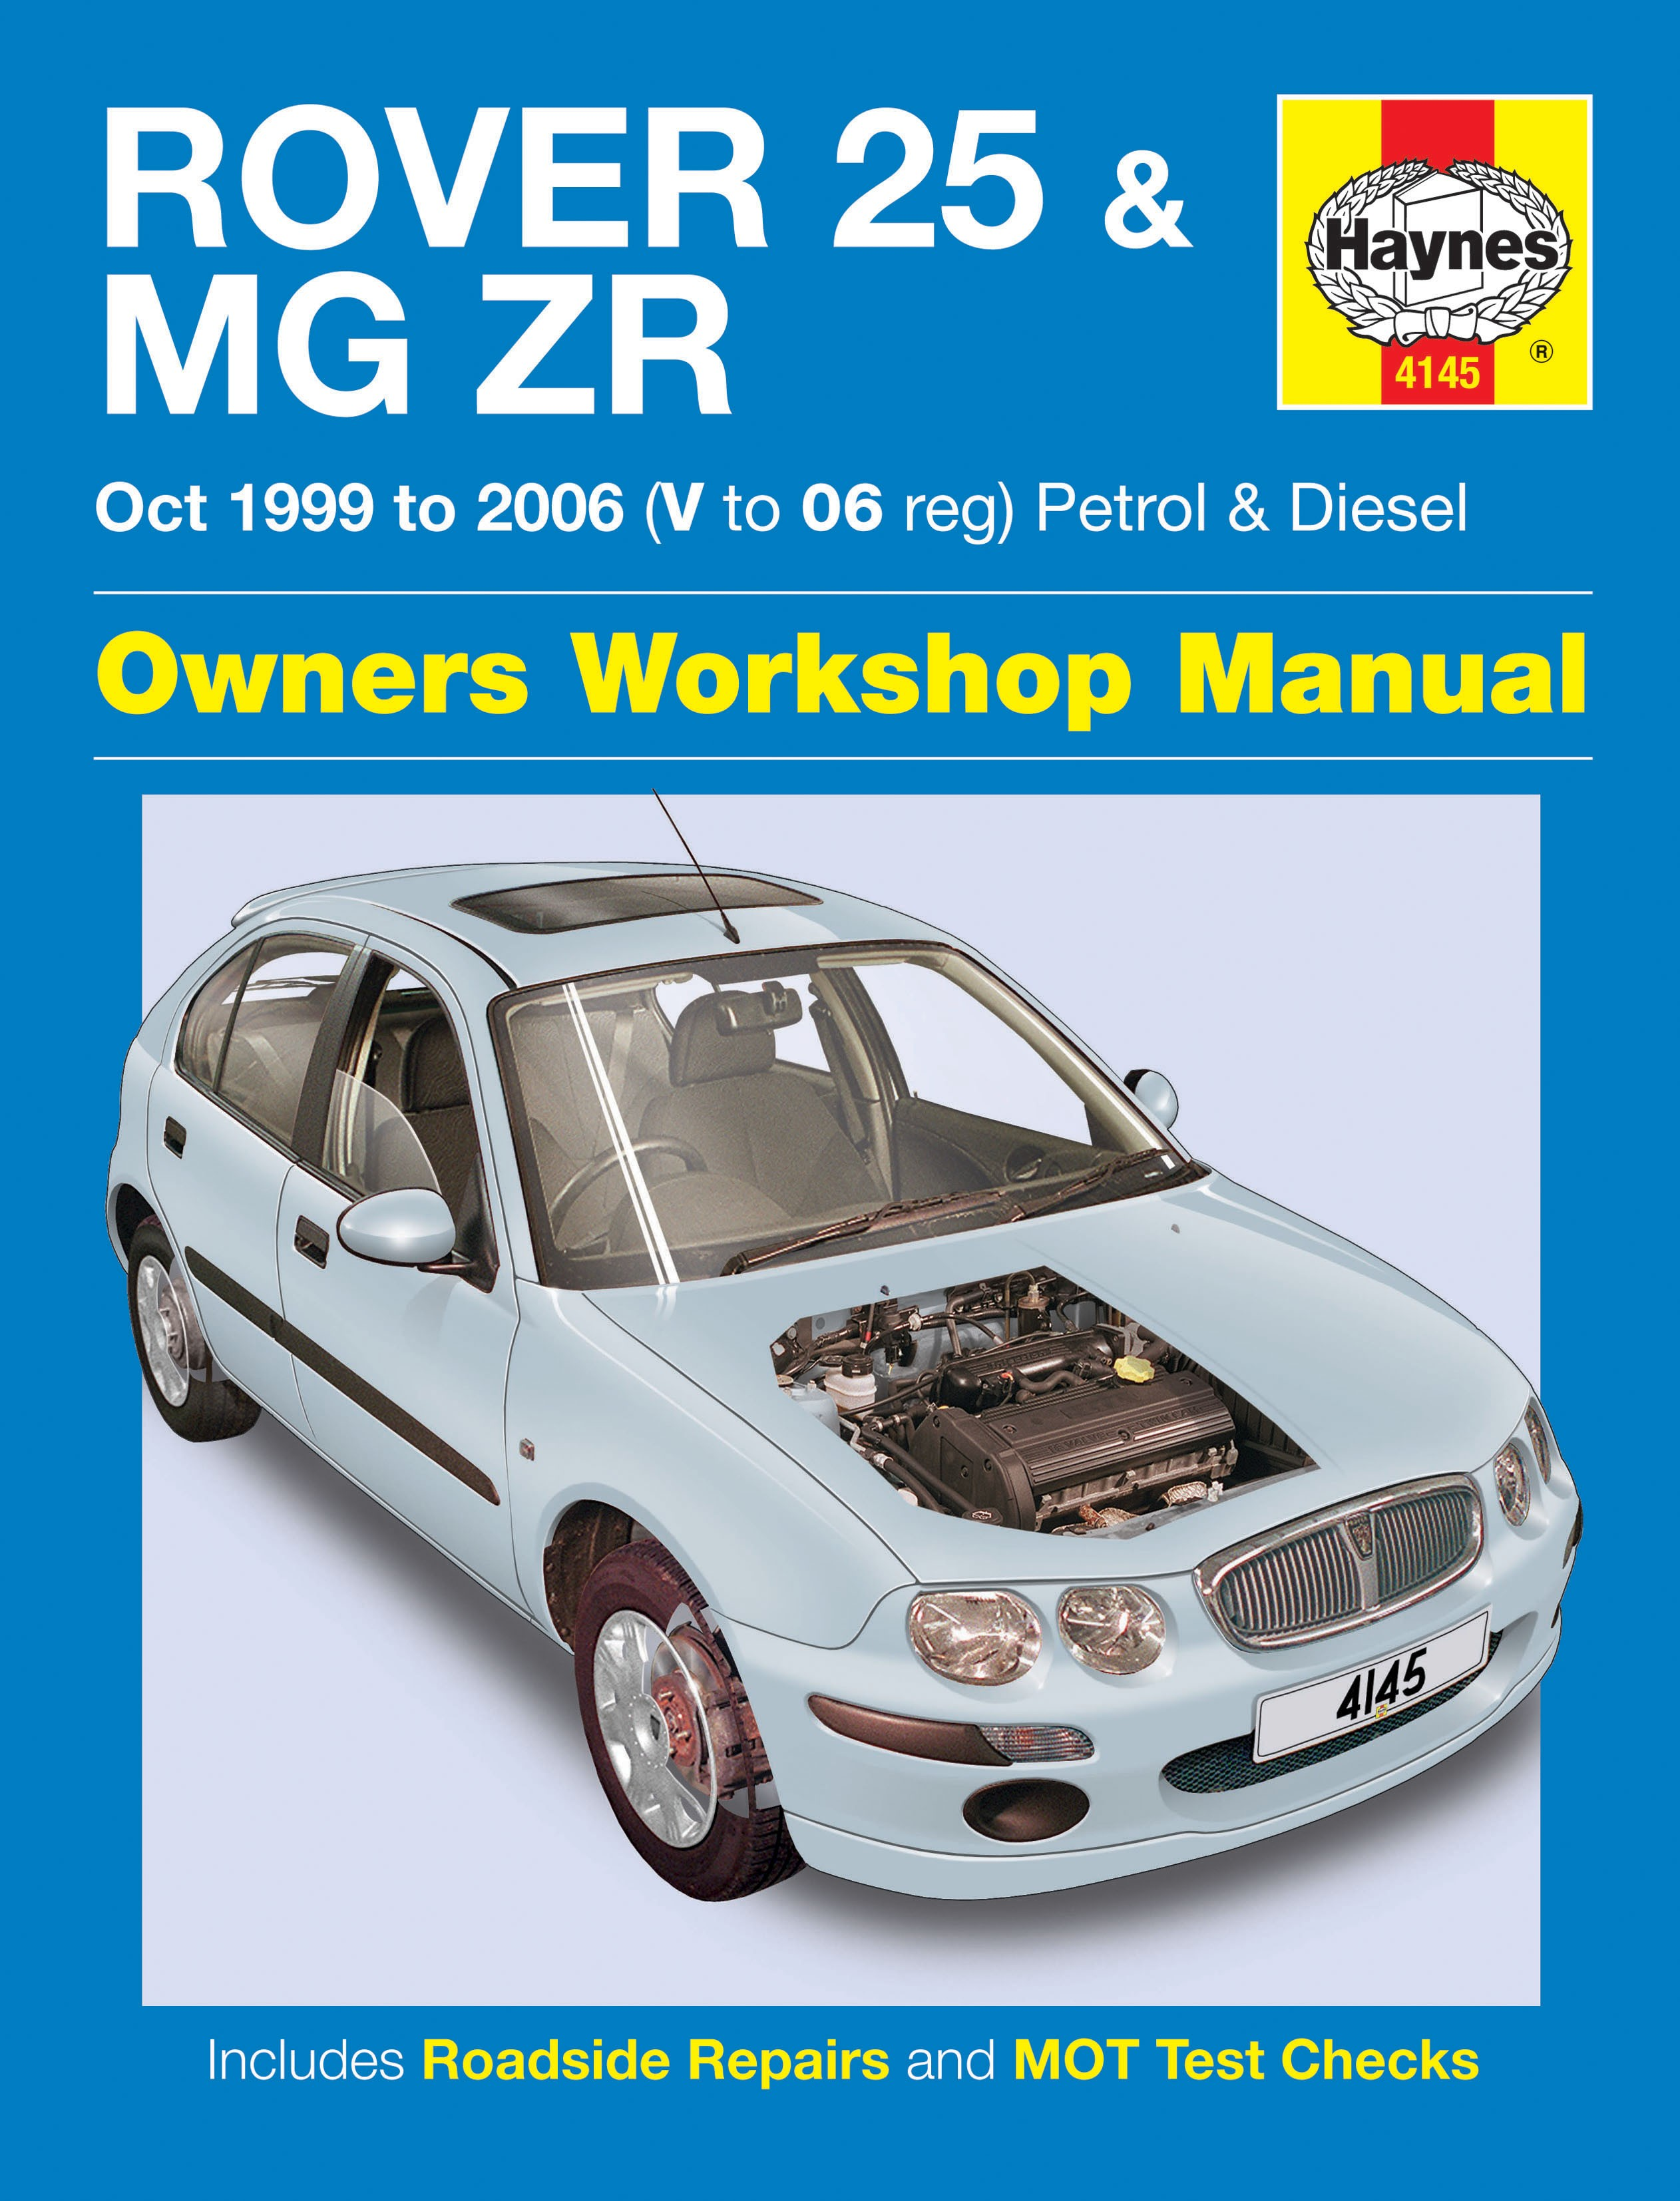 Wiring Diagram For Rover 25 Schematic Diagrams Wiper Engine Stunning Gallery Hvac